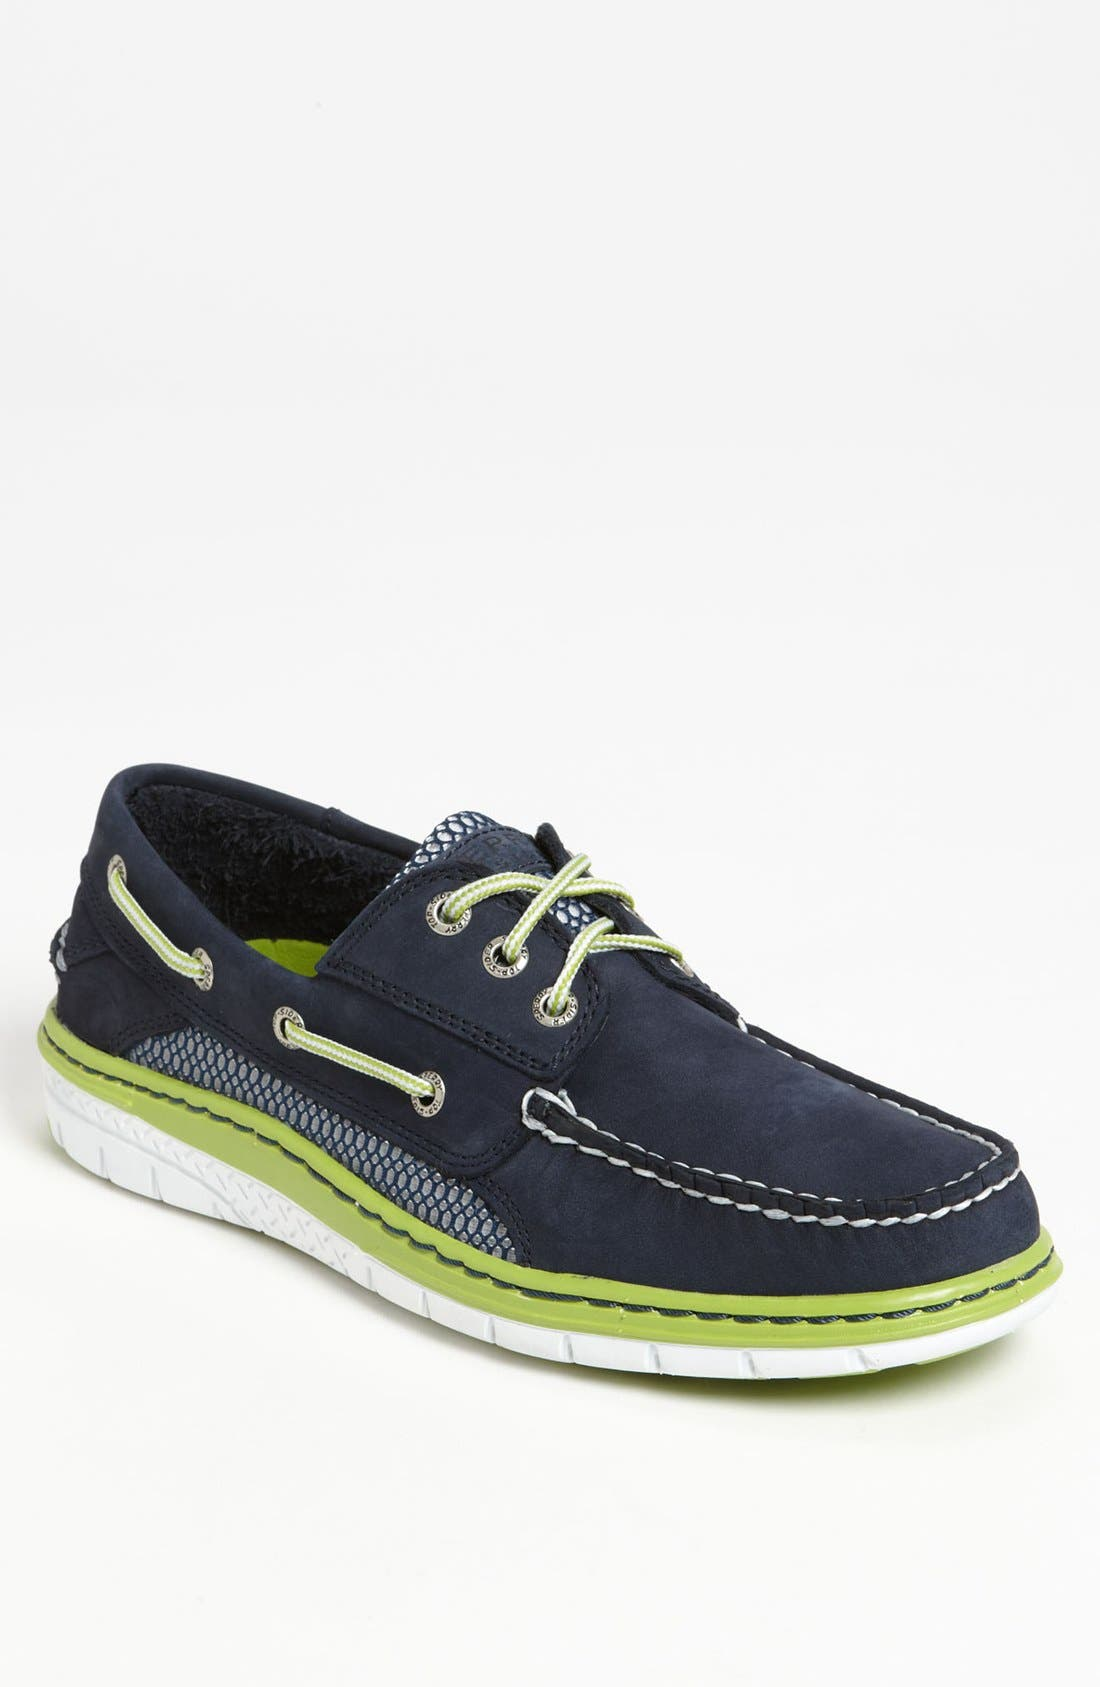 'Billfish Ultralite' Boat Shoe,                             Main thumbnail 17, color,